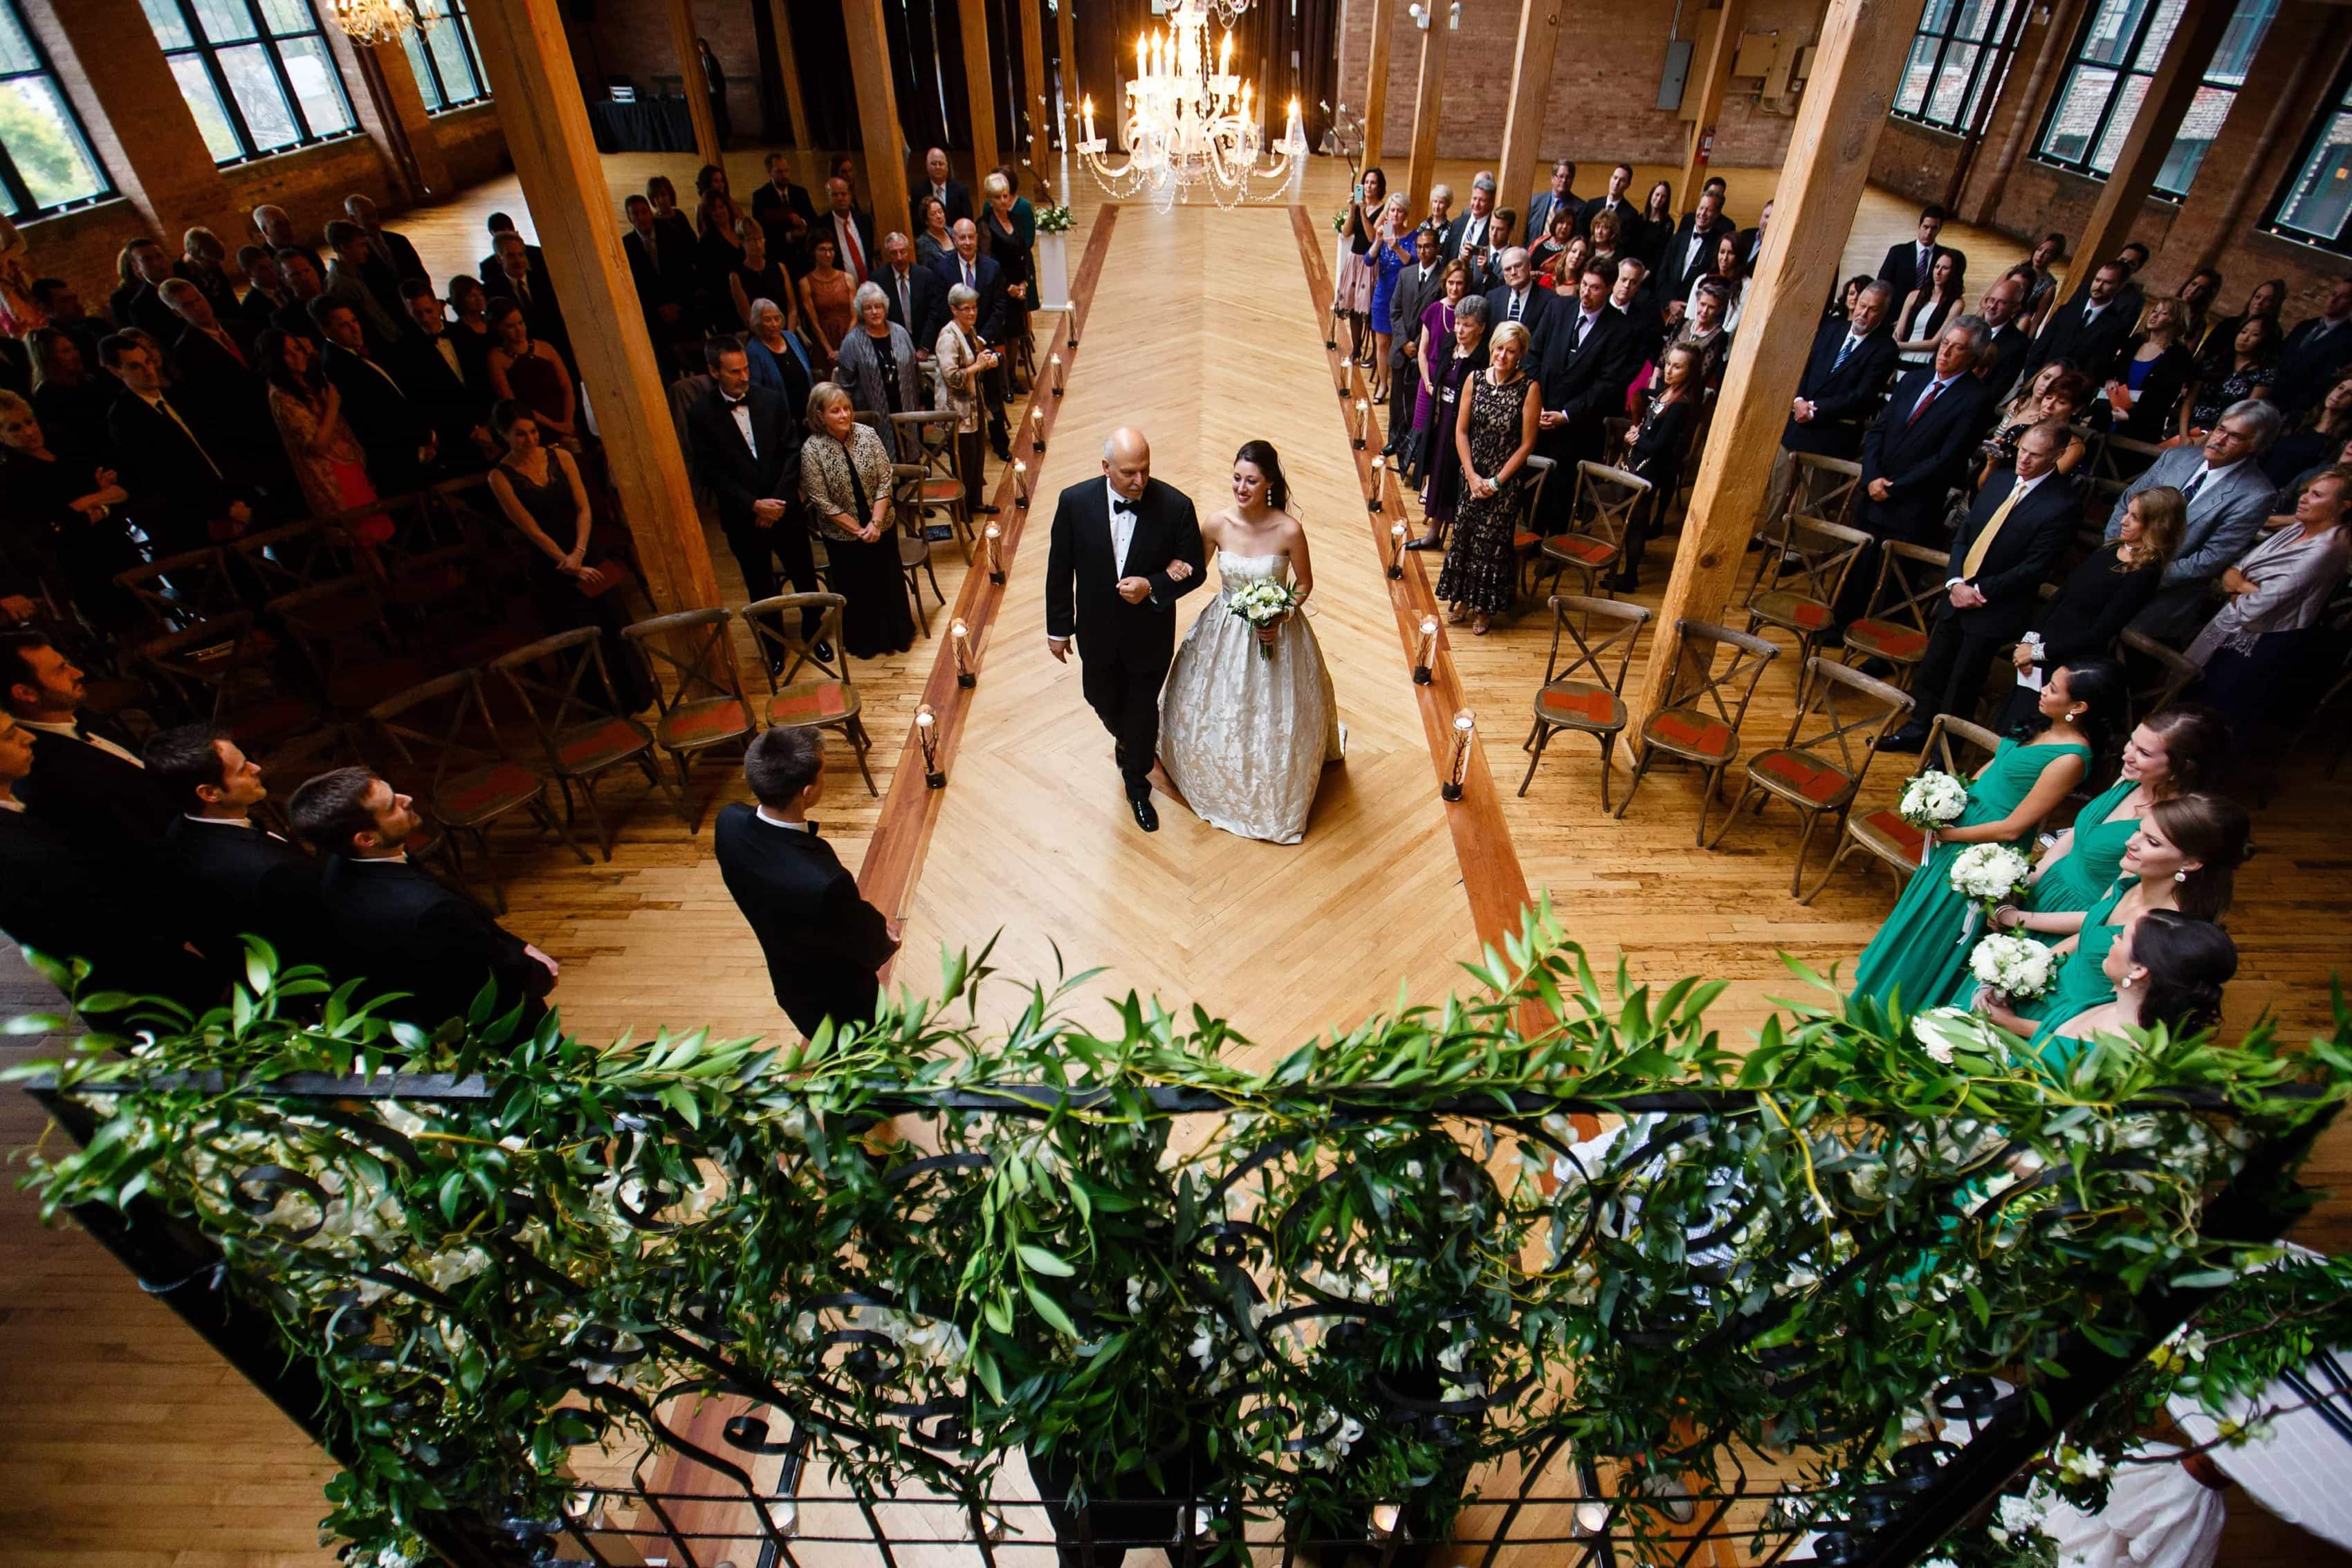 A father walks his daughter down the aisle during her wedding at Bridgeport Art Center in Chicago, Illinois.